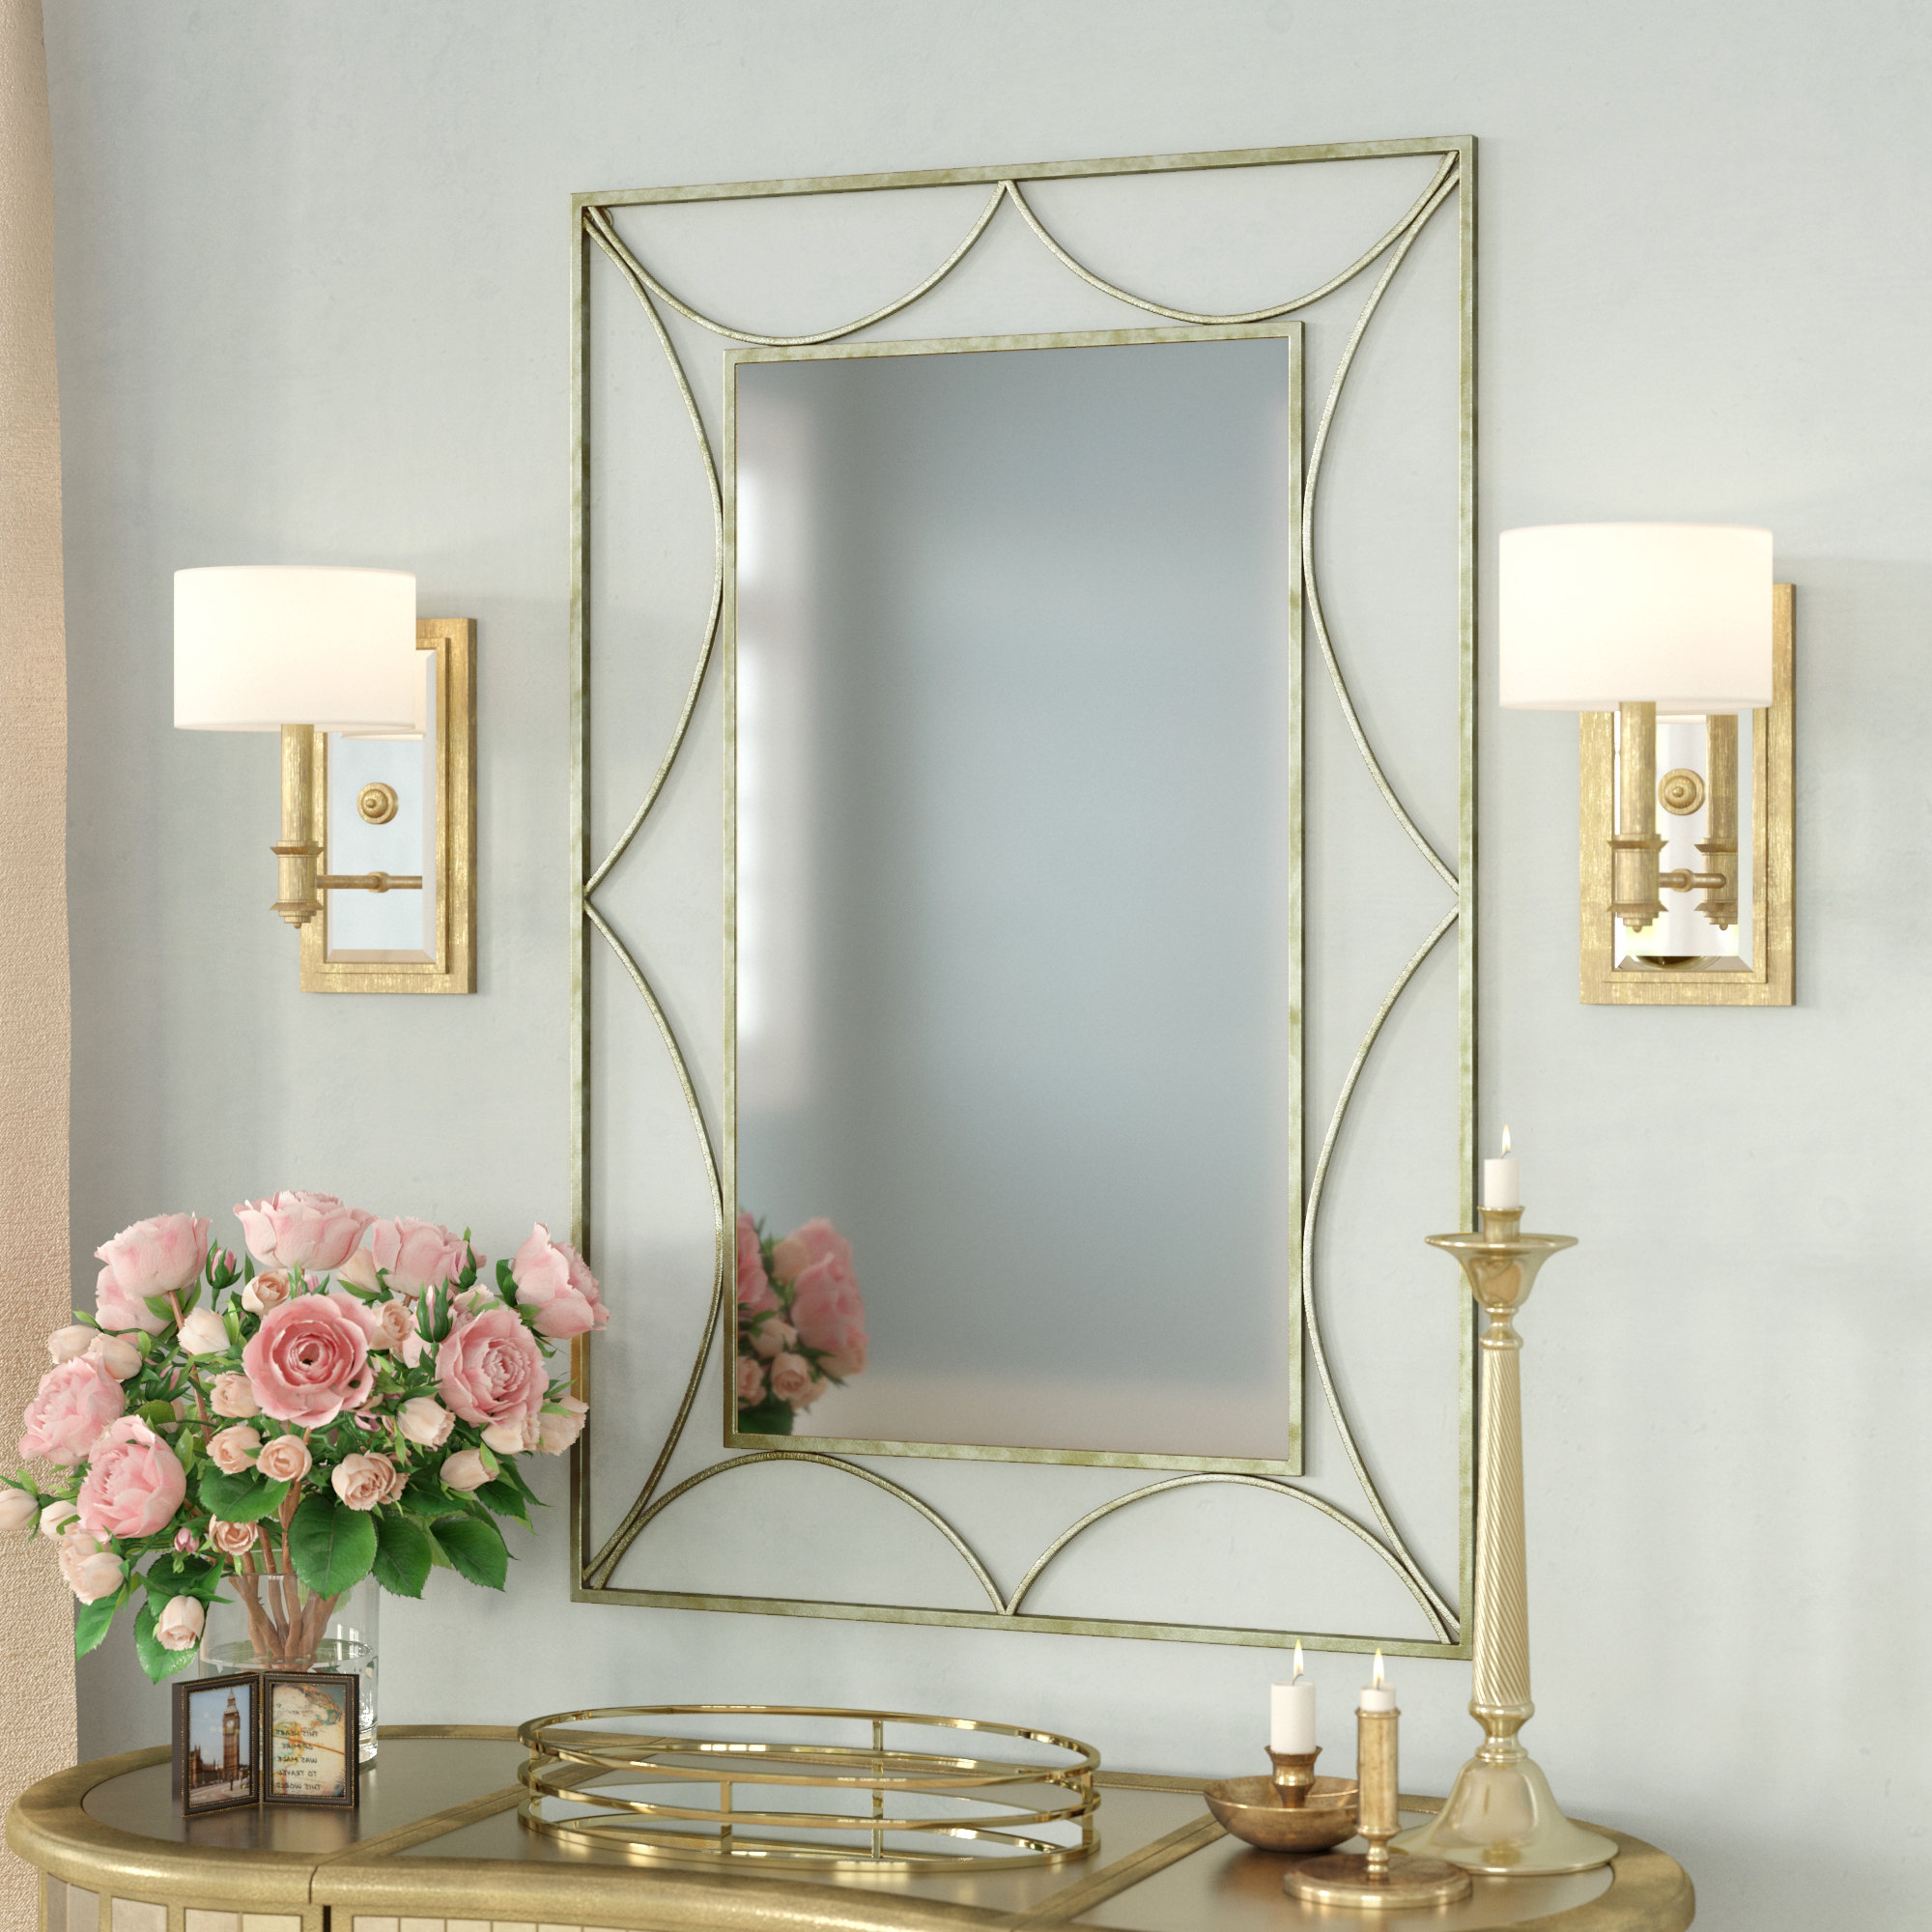 Ellesmere Wall Accent Mirror Intended For Best And Newest Ulus Accent Mirrors (View 5 of 20)